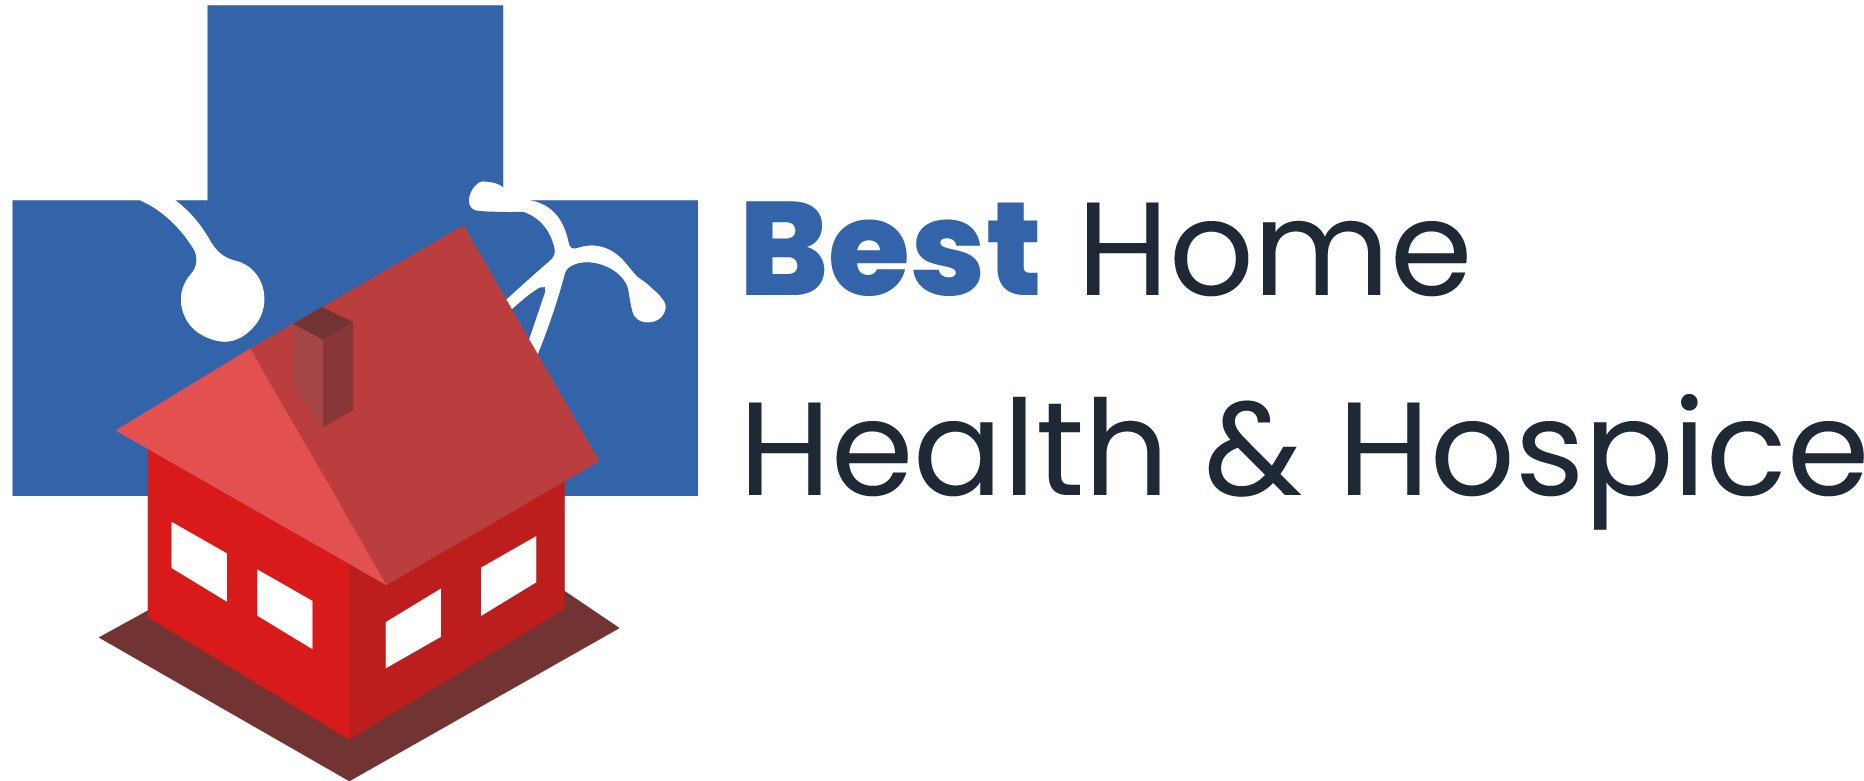 Best Home Health & Hospice